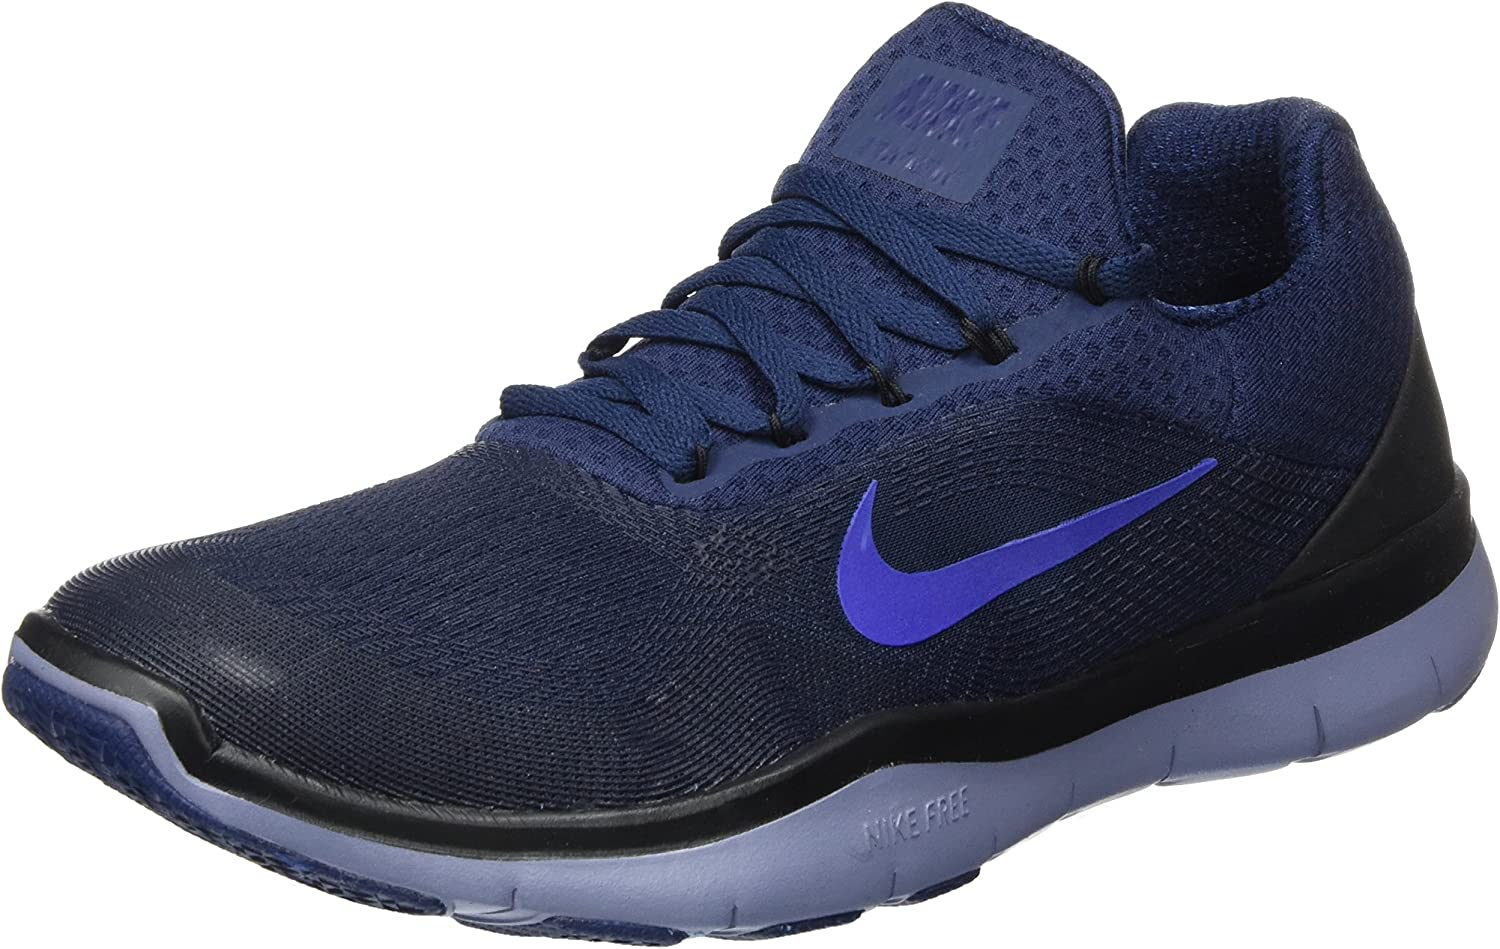 Nike Mens Free Trainer V7 Training Shoes